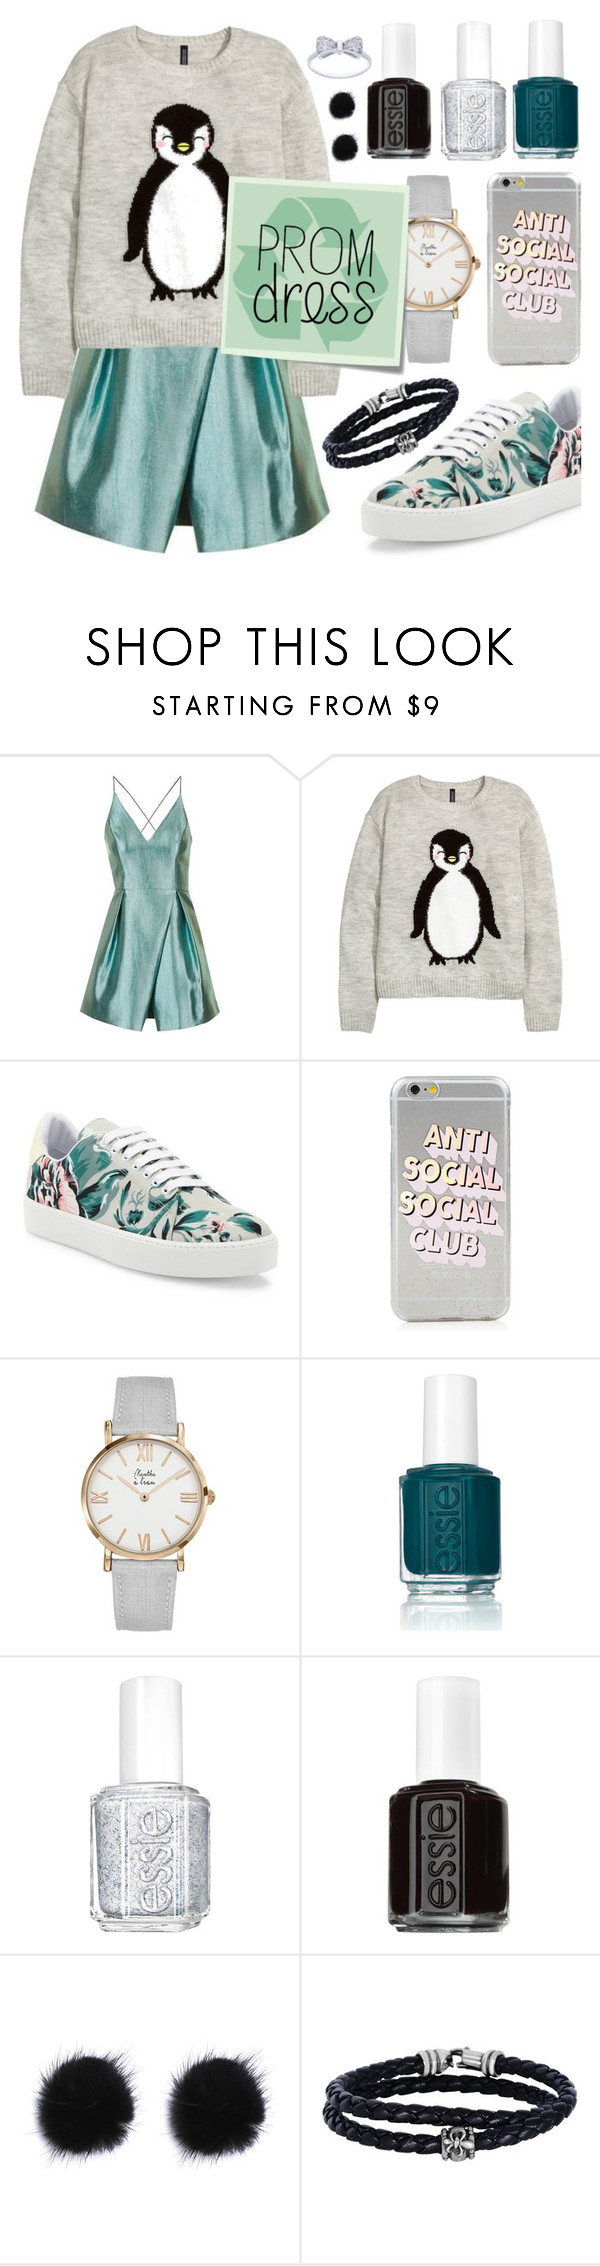 """Penguin & Recycled Prom Dress"" by tara-omar ❤ liked on Polyvore featuring Topshop, H&M, Burberry, Essie, Post-It and Phillip Gavriel"